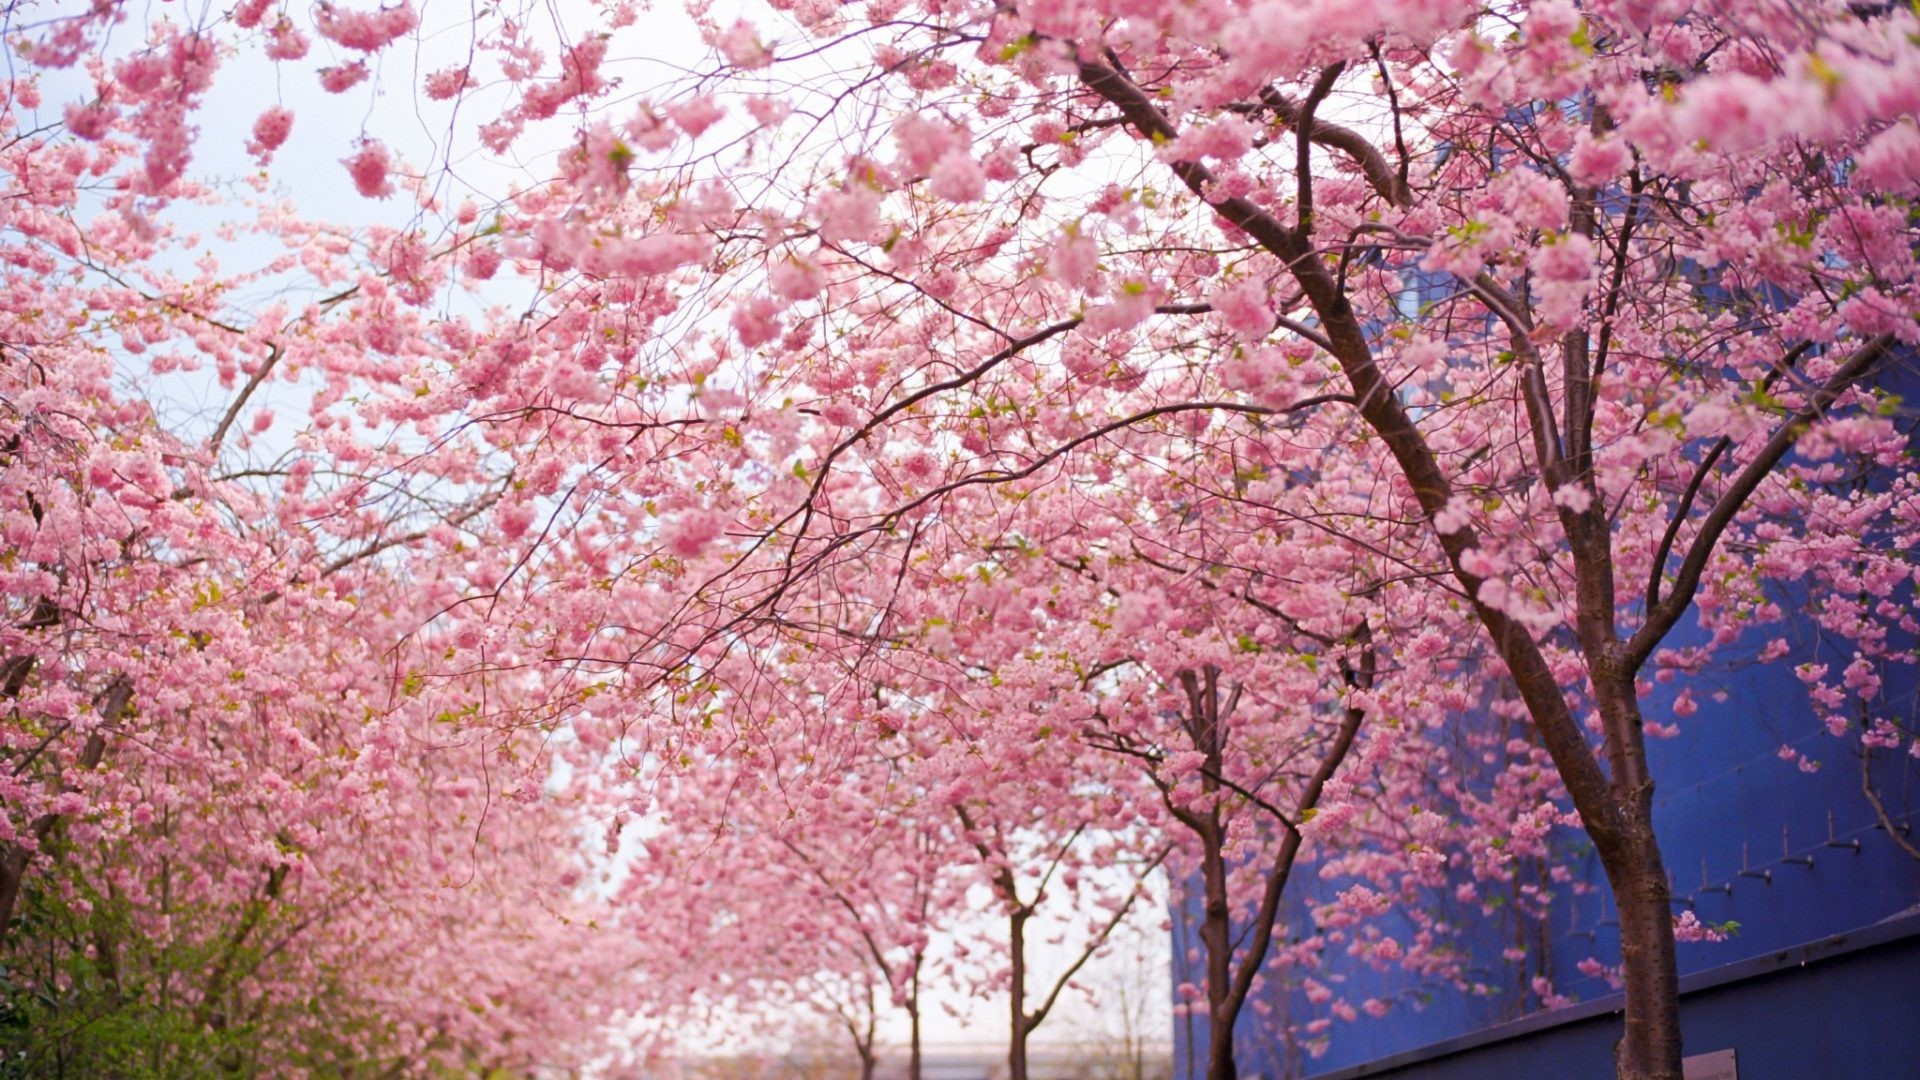 1920x1080 Cherry Tag - Cherry Pink Blooms Wood Branches Flowers Spring Blossoms  Nature Wallpaper Download For Mobile